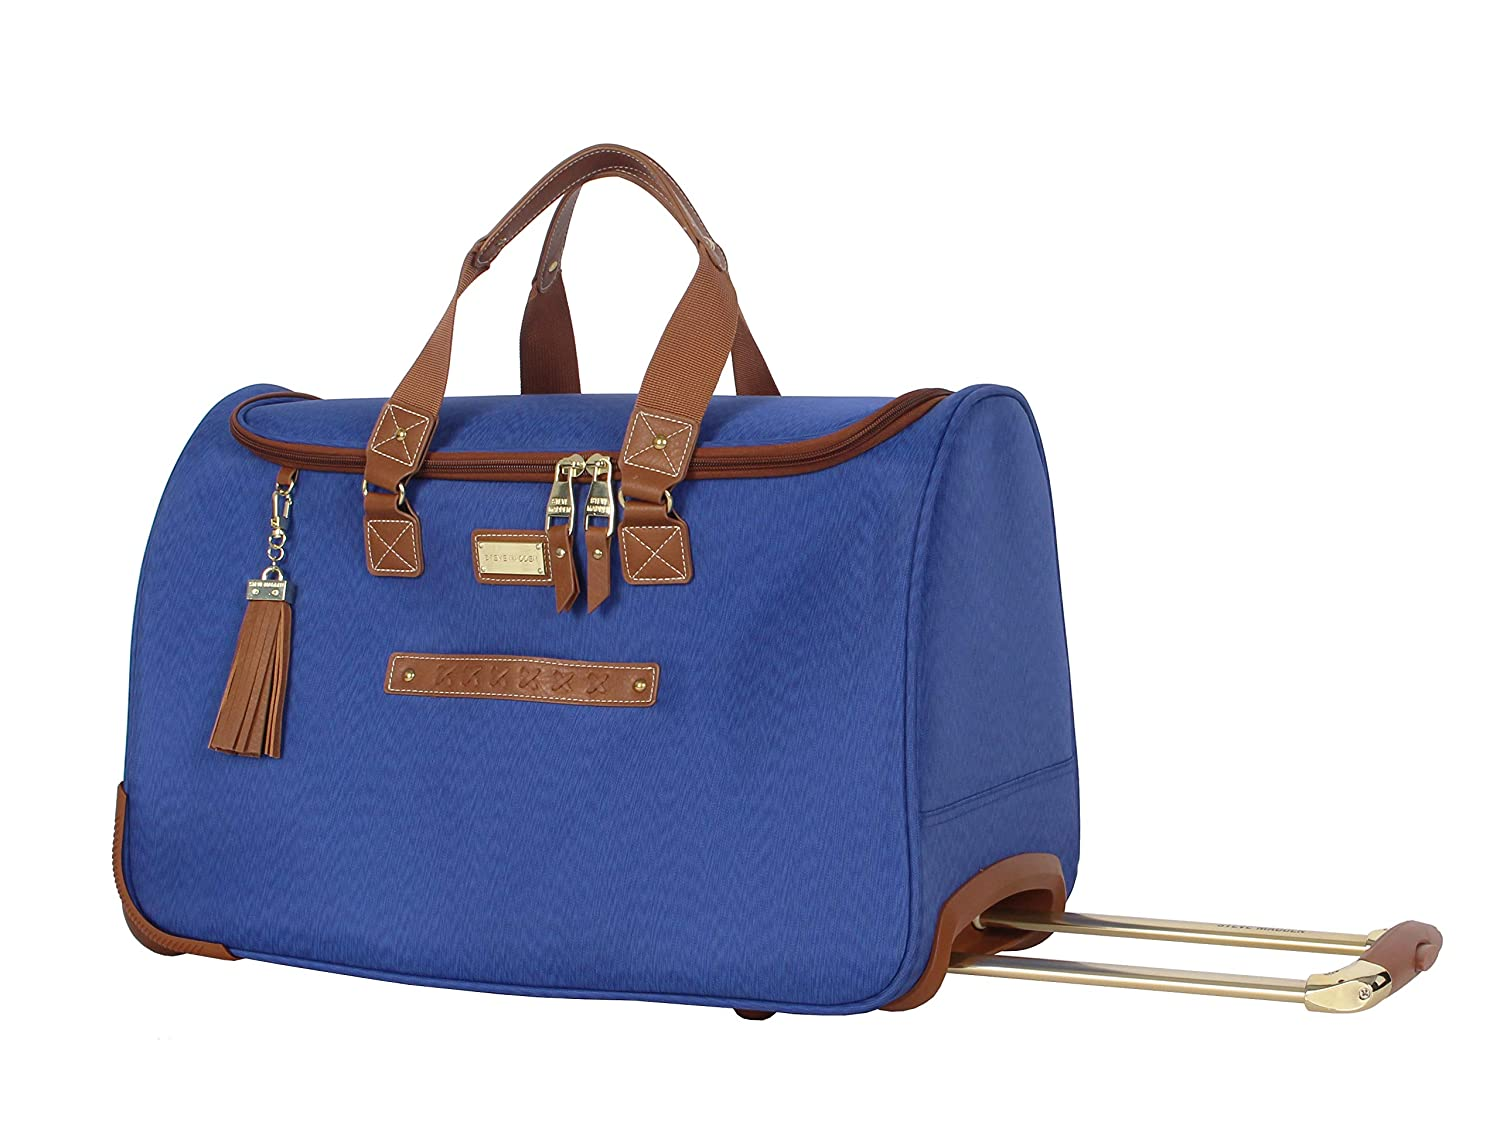 Steve Madden Designer Carry On Luggage Collection – Lightweight 20 Inch Duffel Bag- Weekender Overnight Business Travel Suitcase with 2- Rolling Spinner Wheels Global Blue